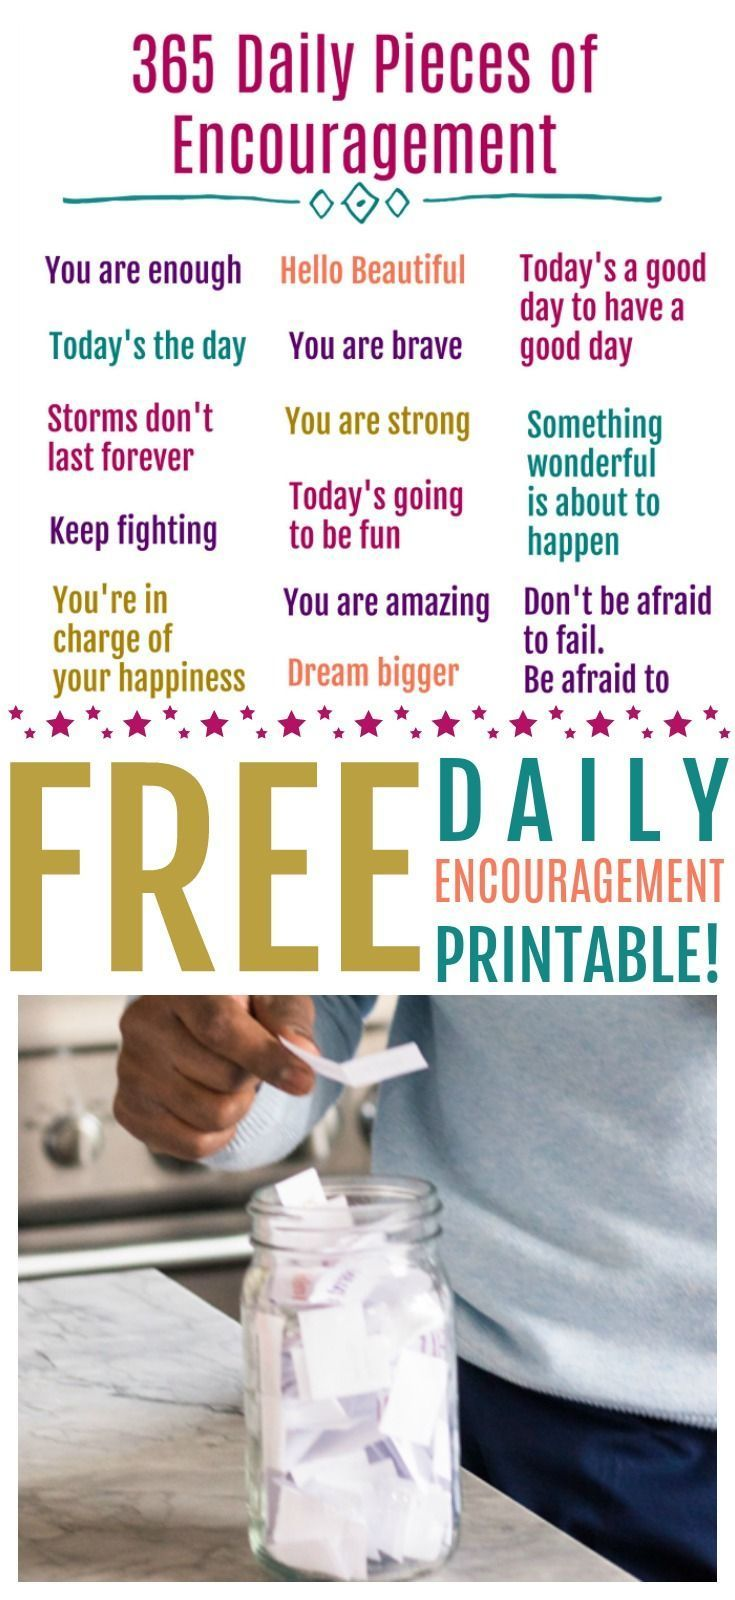 Everyone needs a little pick me up sometimes. Start your day off right with this 365 Daily Quotes of Encouragement Free Printable! # encouragement Quotes 365 Daily Quotes of Encouragement - We're Parents #365motsbocalidees Everyone needs a little pick me up sometimes. Start your day off right with this 365 Daily Quotes of Encouragement Free Printable! # encouragement Quotes 365 Daily Quotes of Encouragement - We're Parents #365motsbocalidees